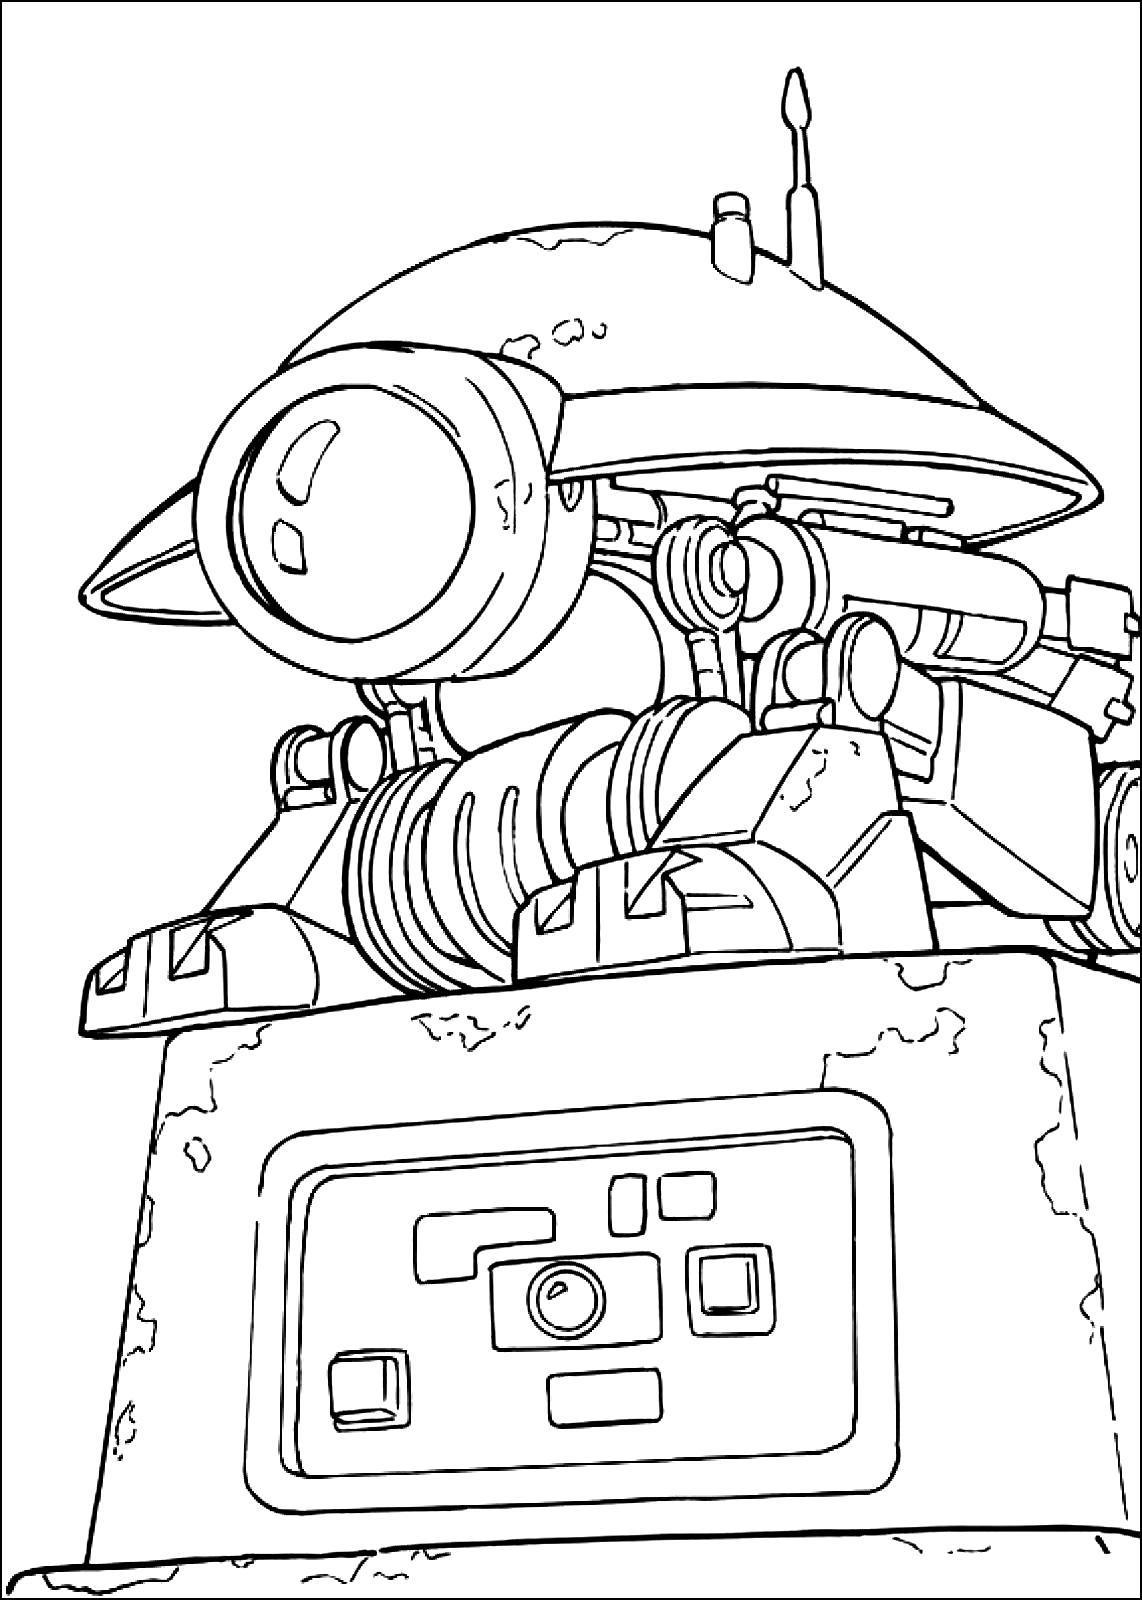 Star Wars Coloring Pages to Print Free